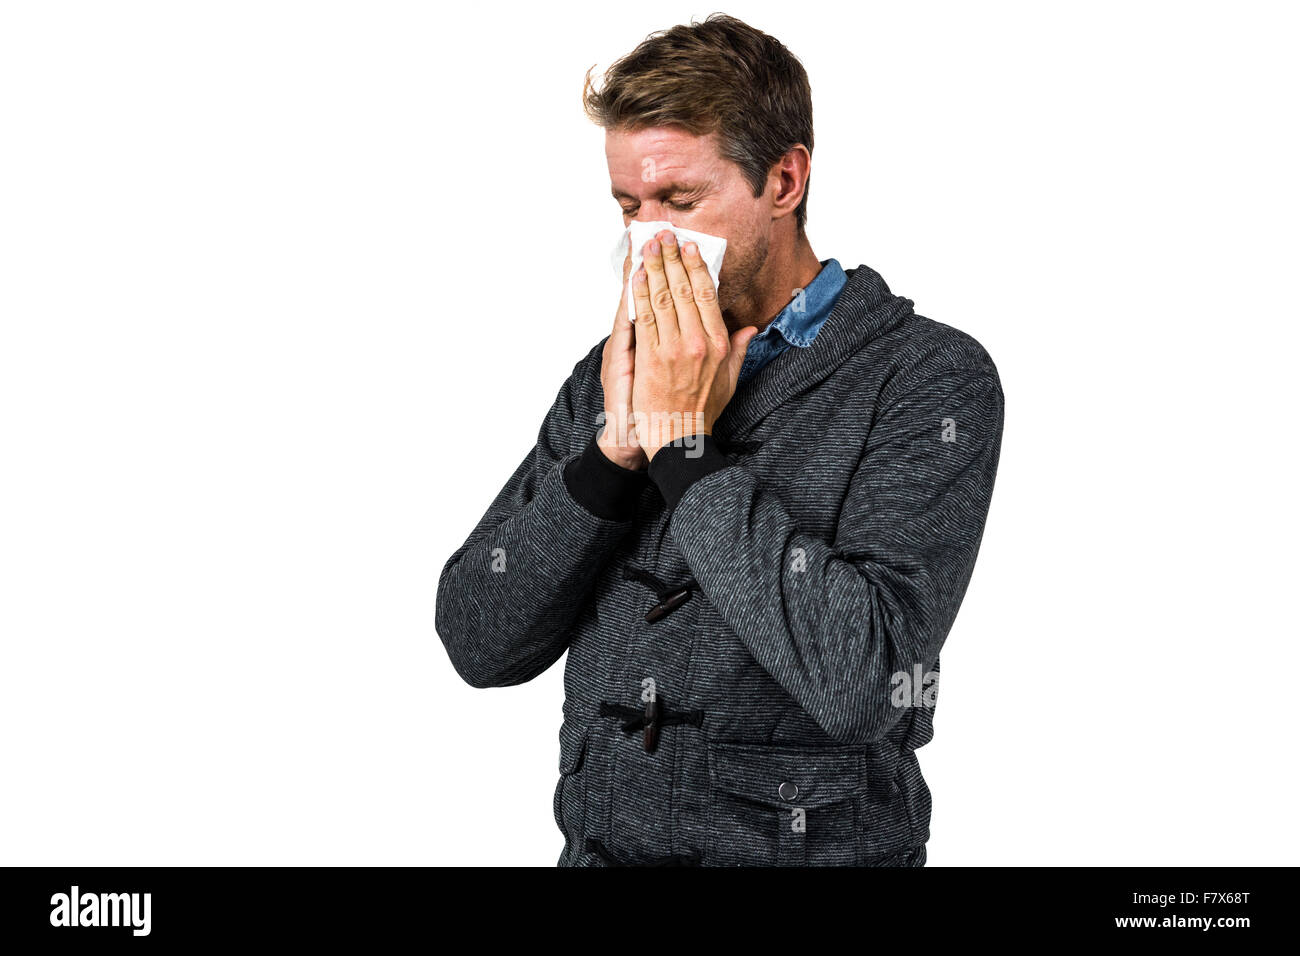 Warmly dressed man blowing his nose - Stock Image